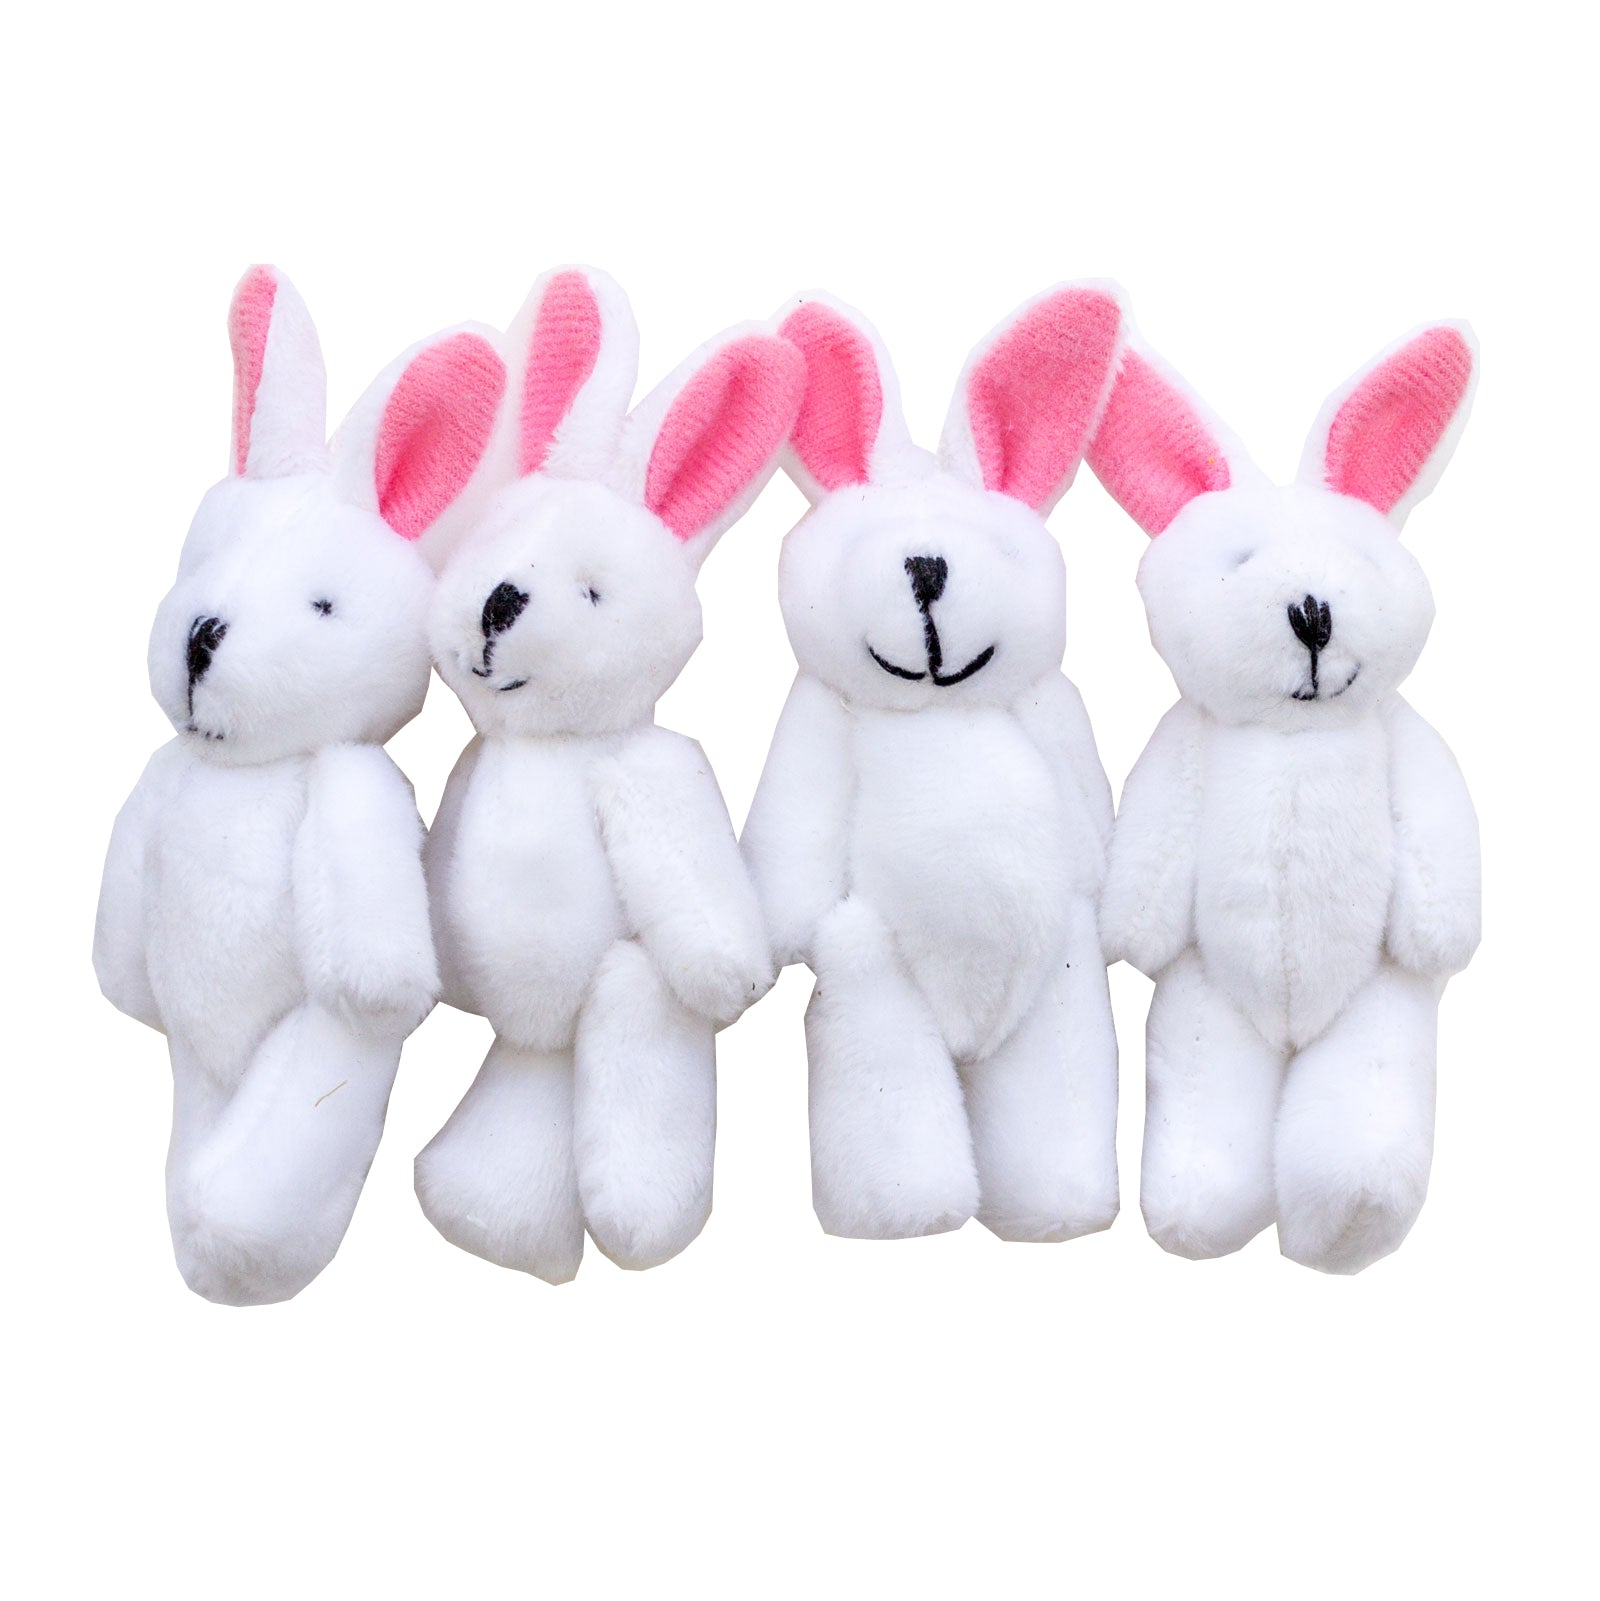 Small Rabbits X 30 - Cute Soft Adorable